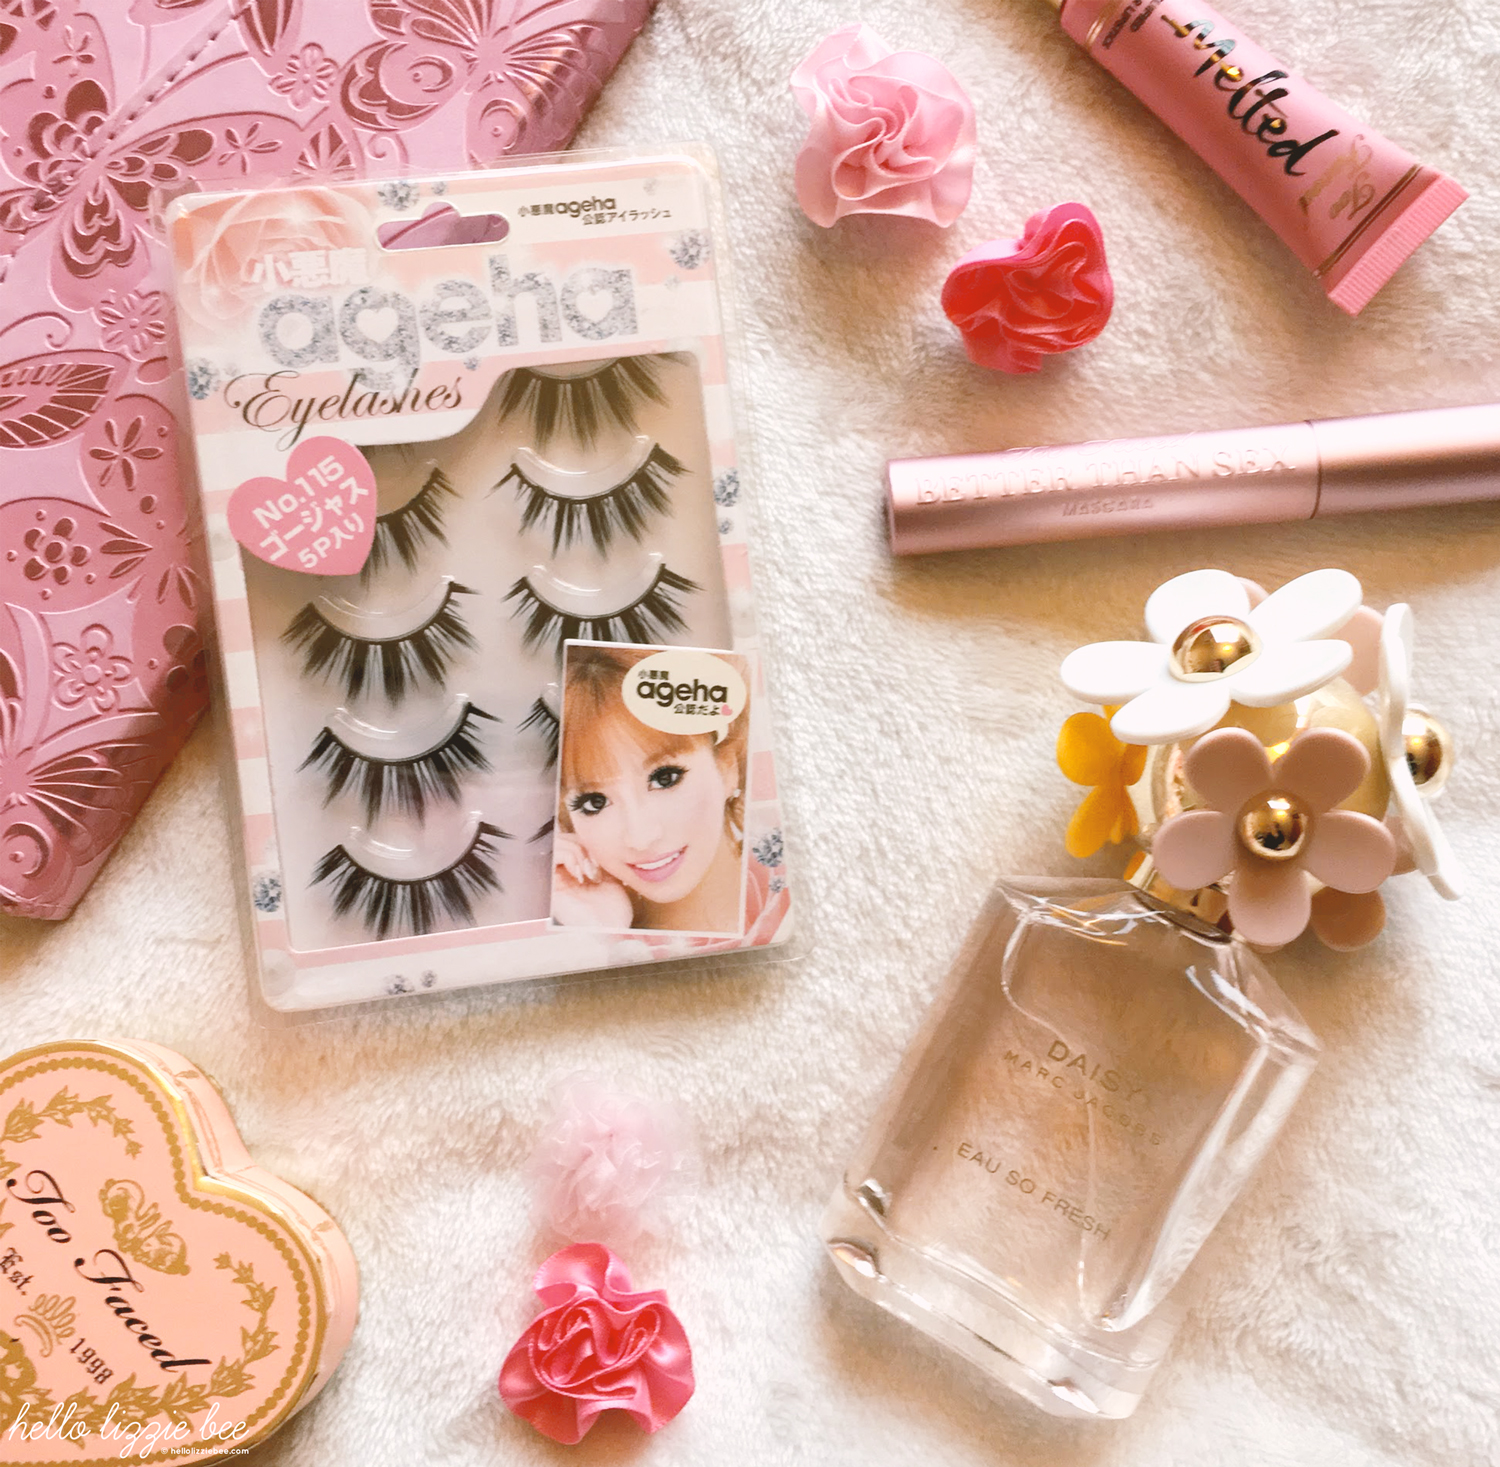 abcacb7e8ee Gyaru False Lashes + Where to Buy Them - Hello Lizzie Bee